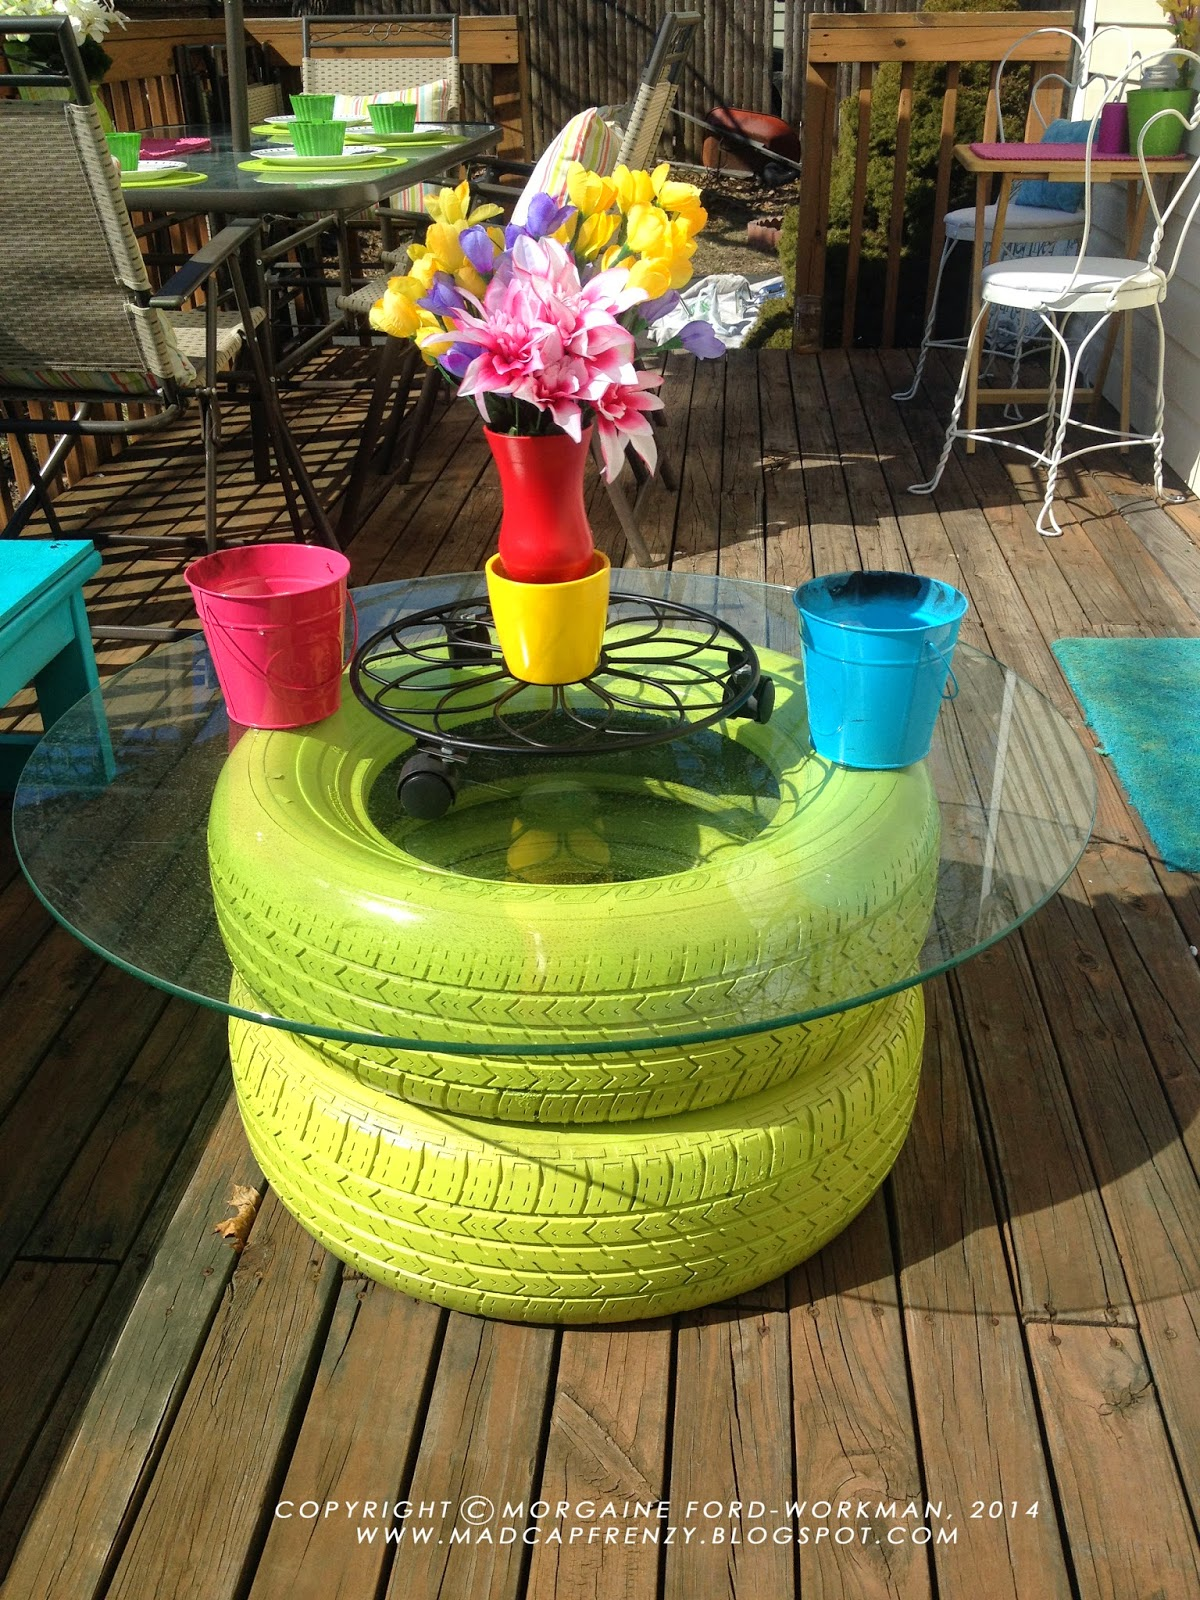 Garden Coffee Table Made Of Old Tires